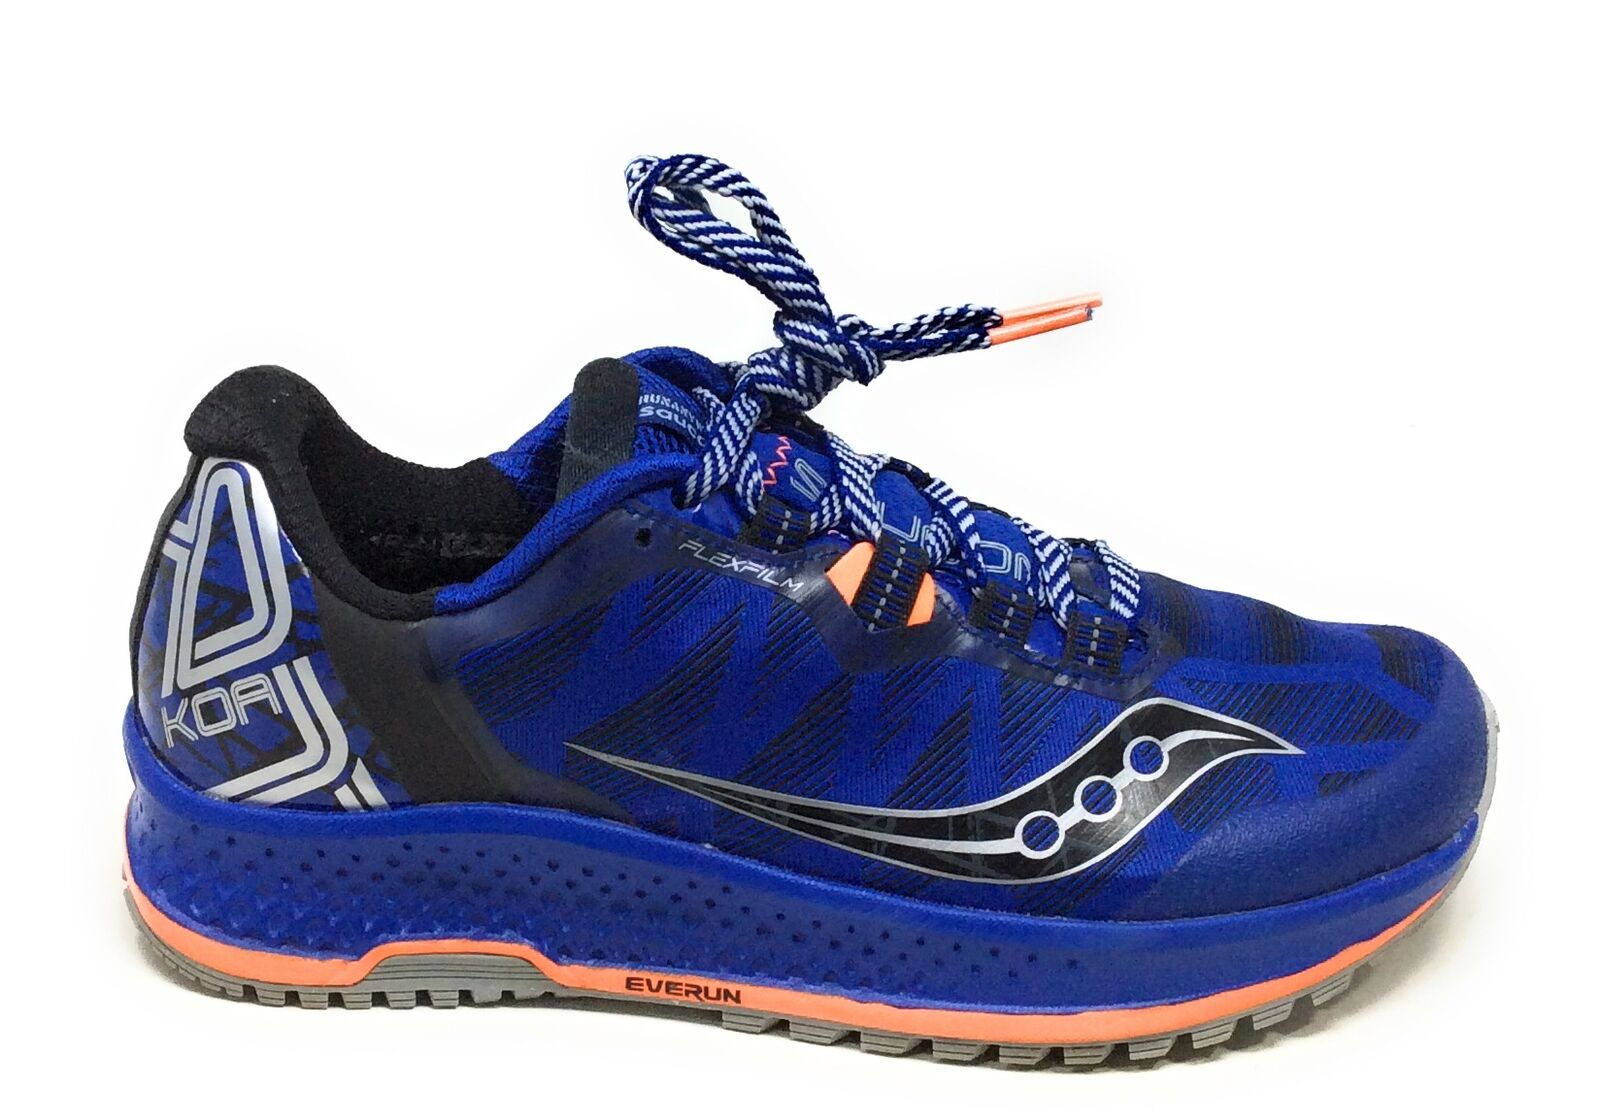 Saucony Mens KOA TR Trail Running Sneaker shoes bluee orange Size 7 M US